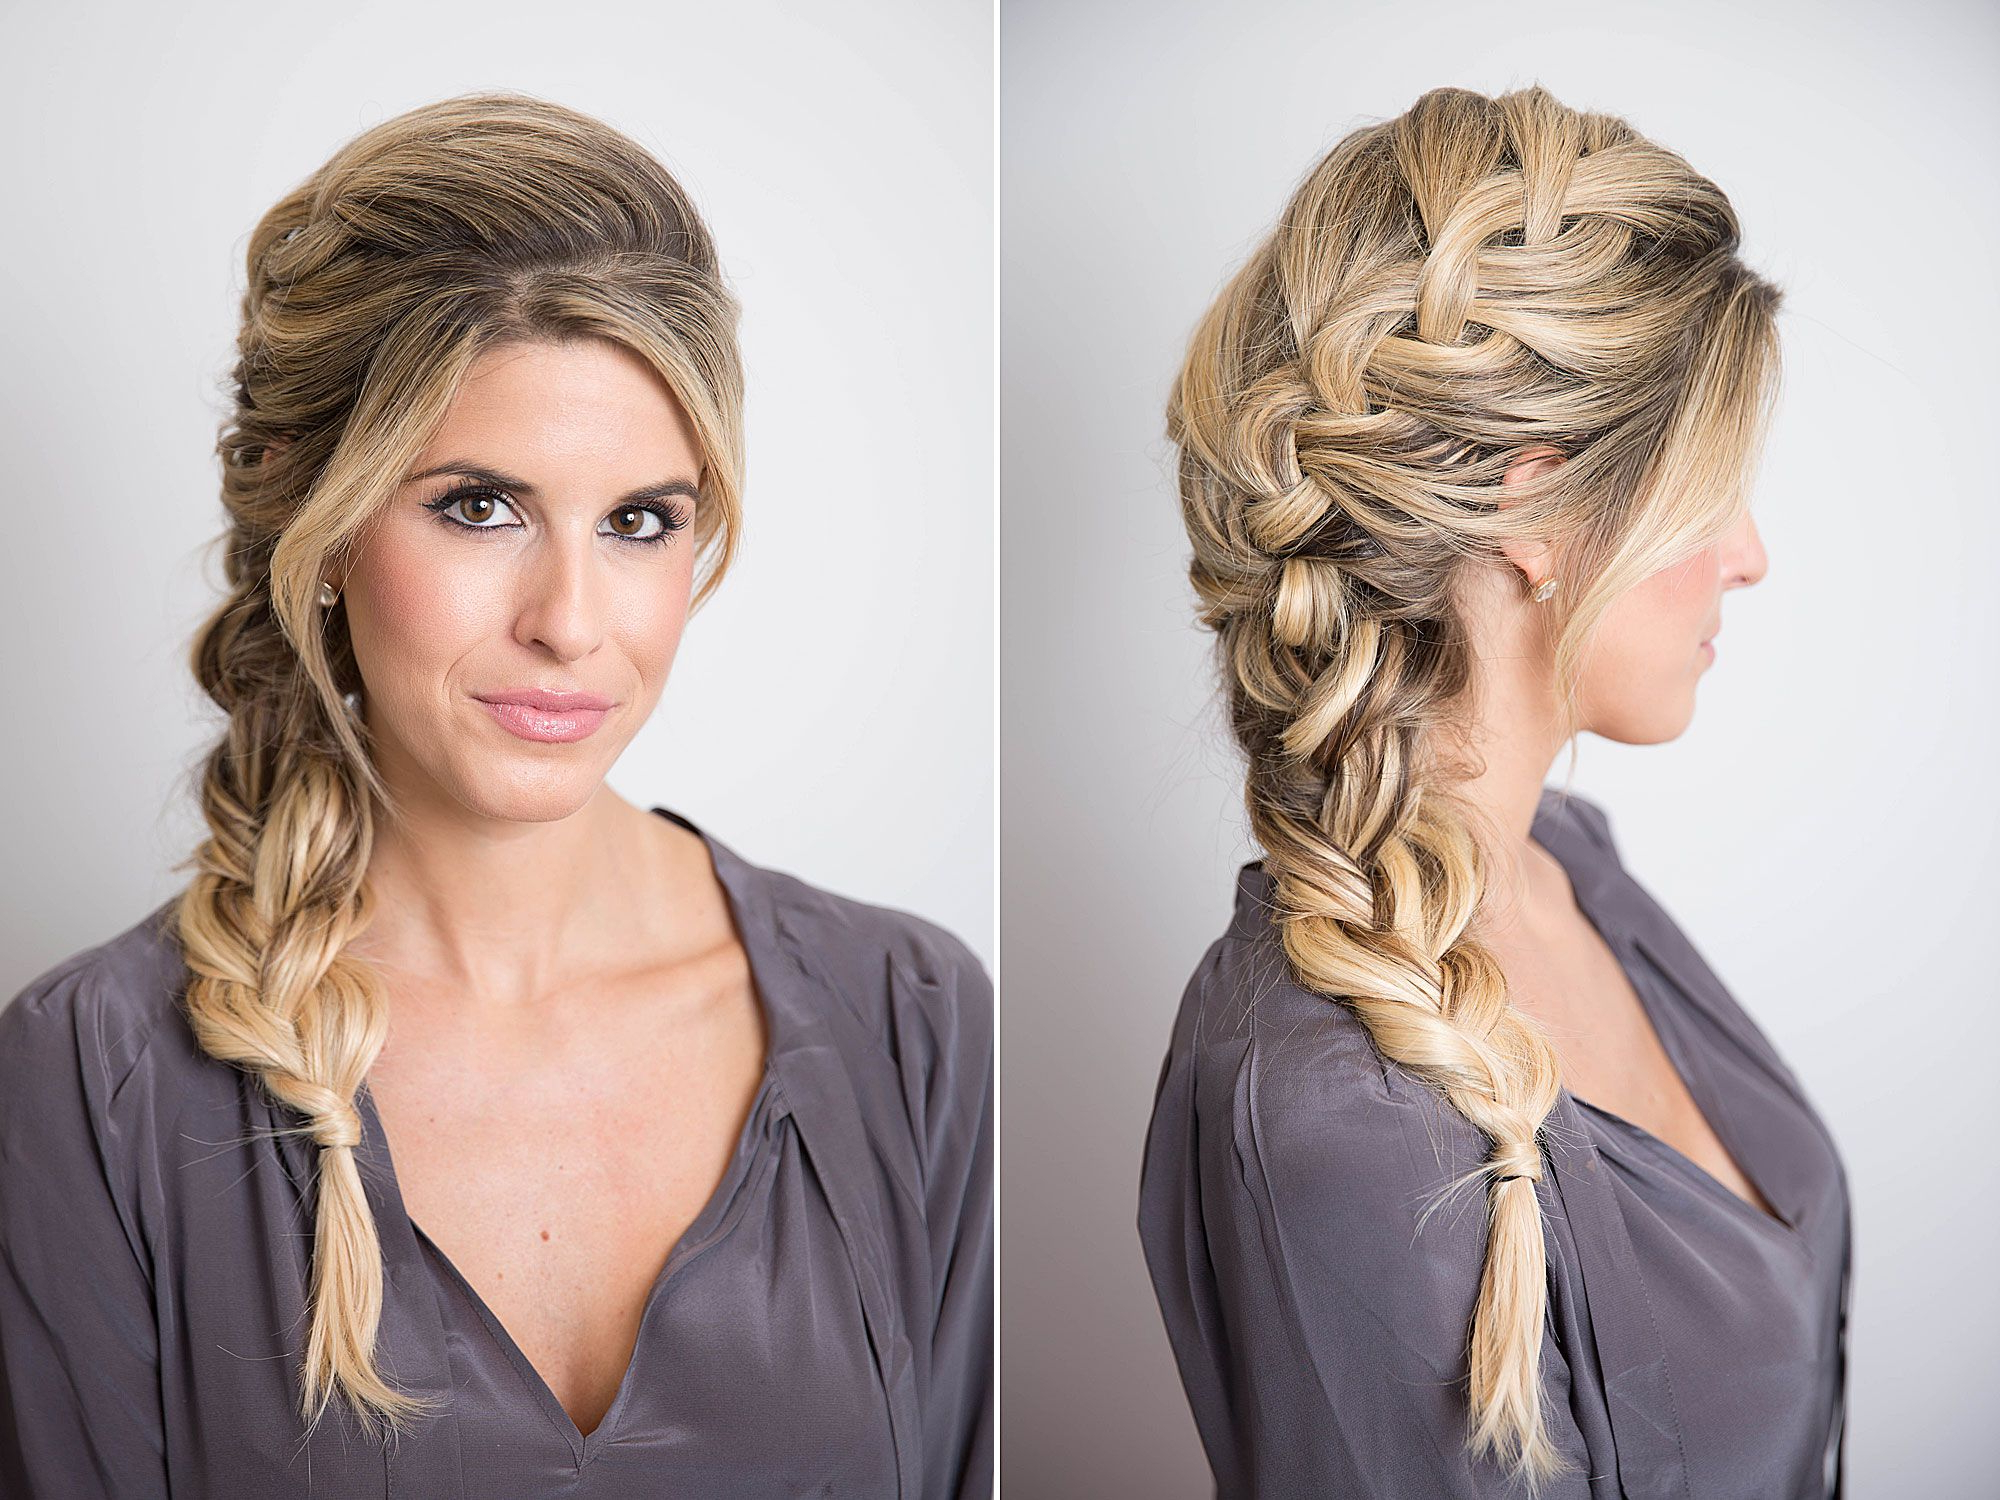 17 Braided Hairstyles With Gifs – How To Do Every Type Of Braid Within Favorite Elegant Braid Side Ponytail Hairstyles (Gallery 19 of 20)